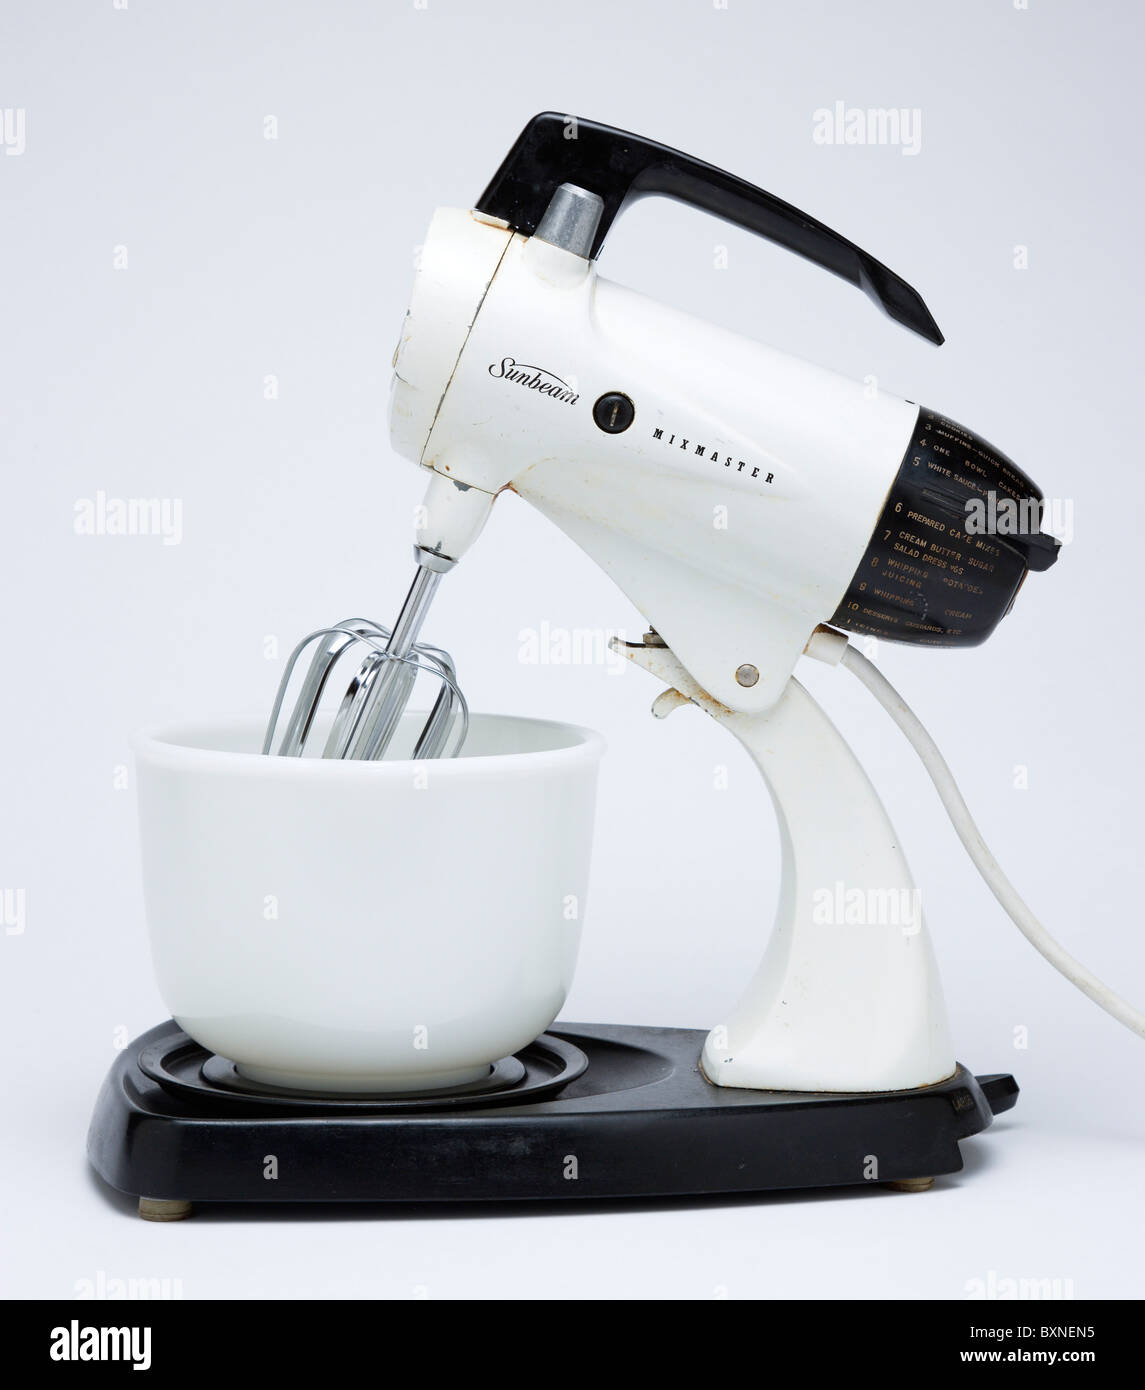 Food Preparation, Cooking, Kitchen Equipment, Sunbeam Mixmaster electric food blender or mixer circa 1953 on a white - Stock Image